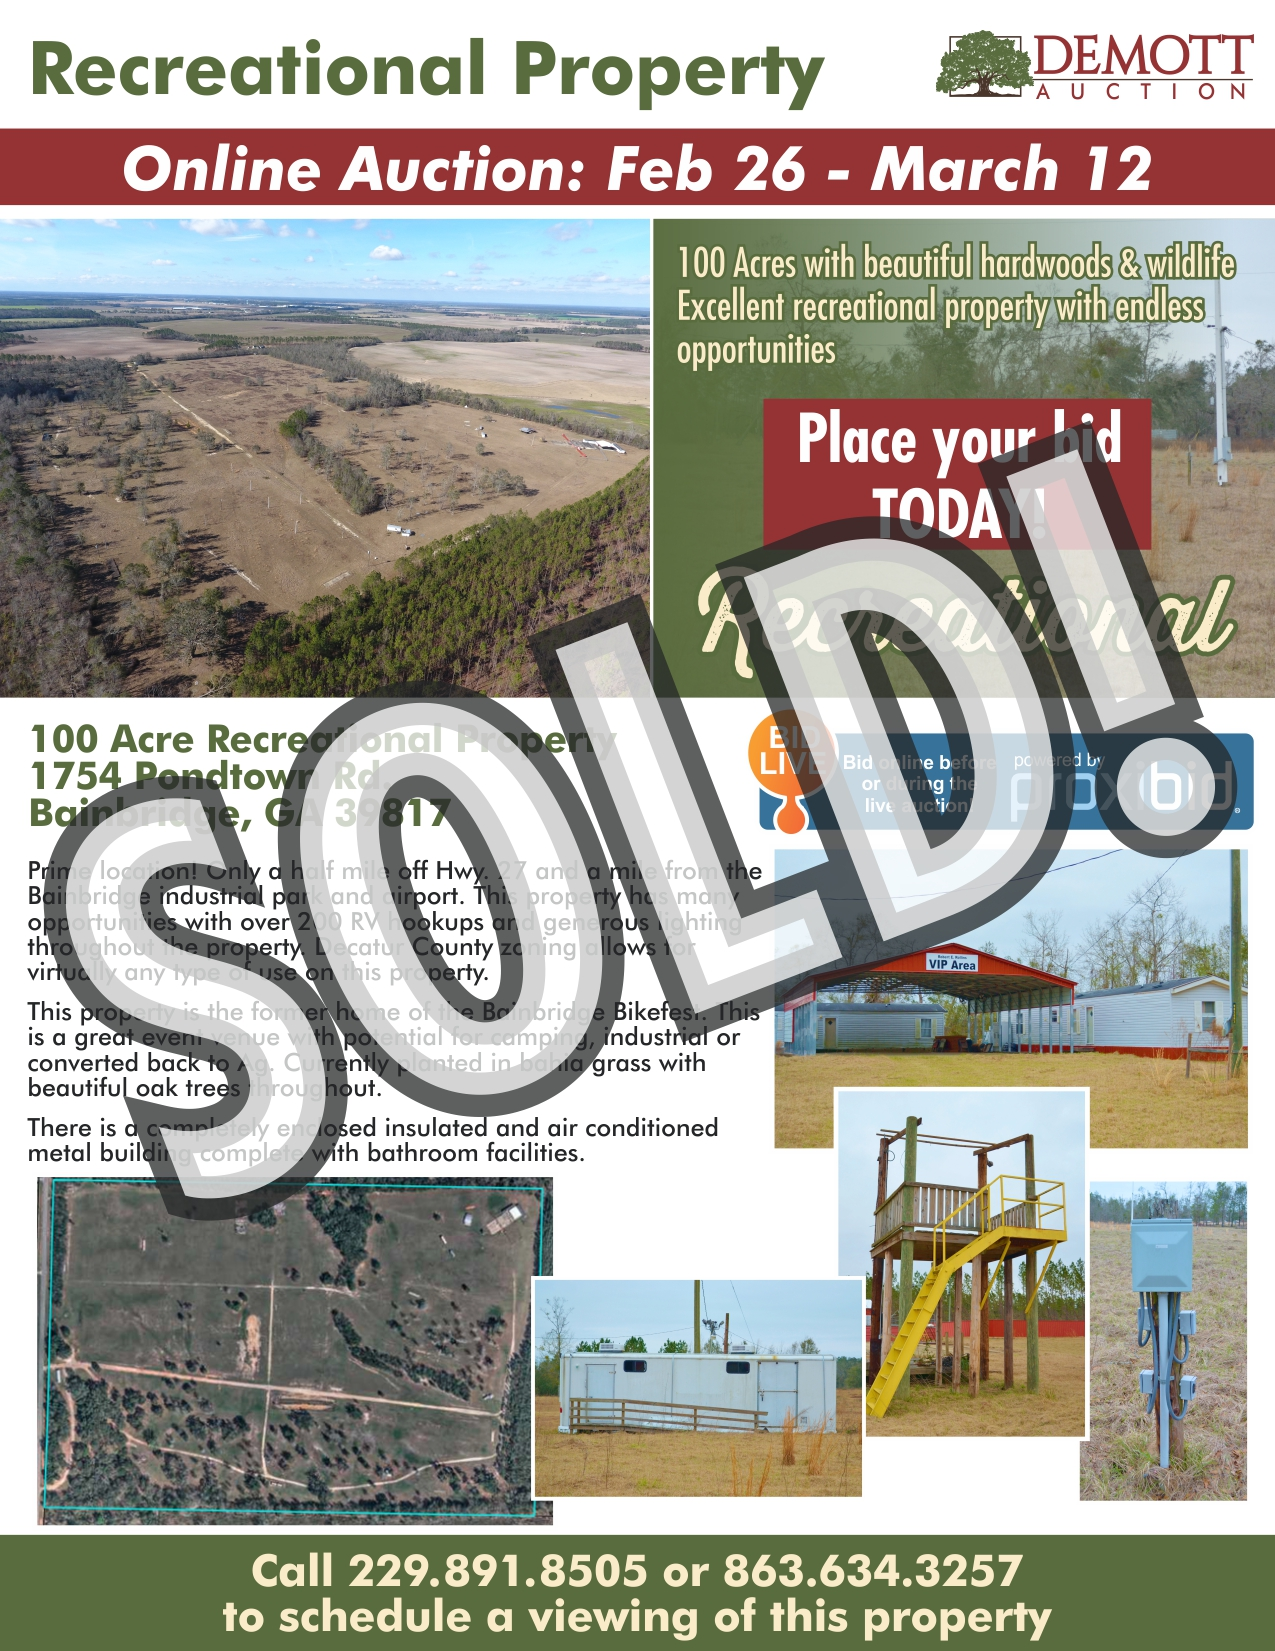 Recreational Property - SOLD